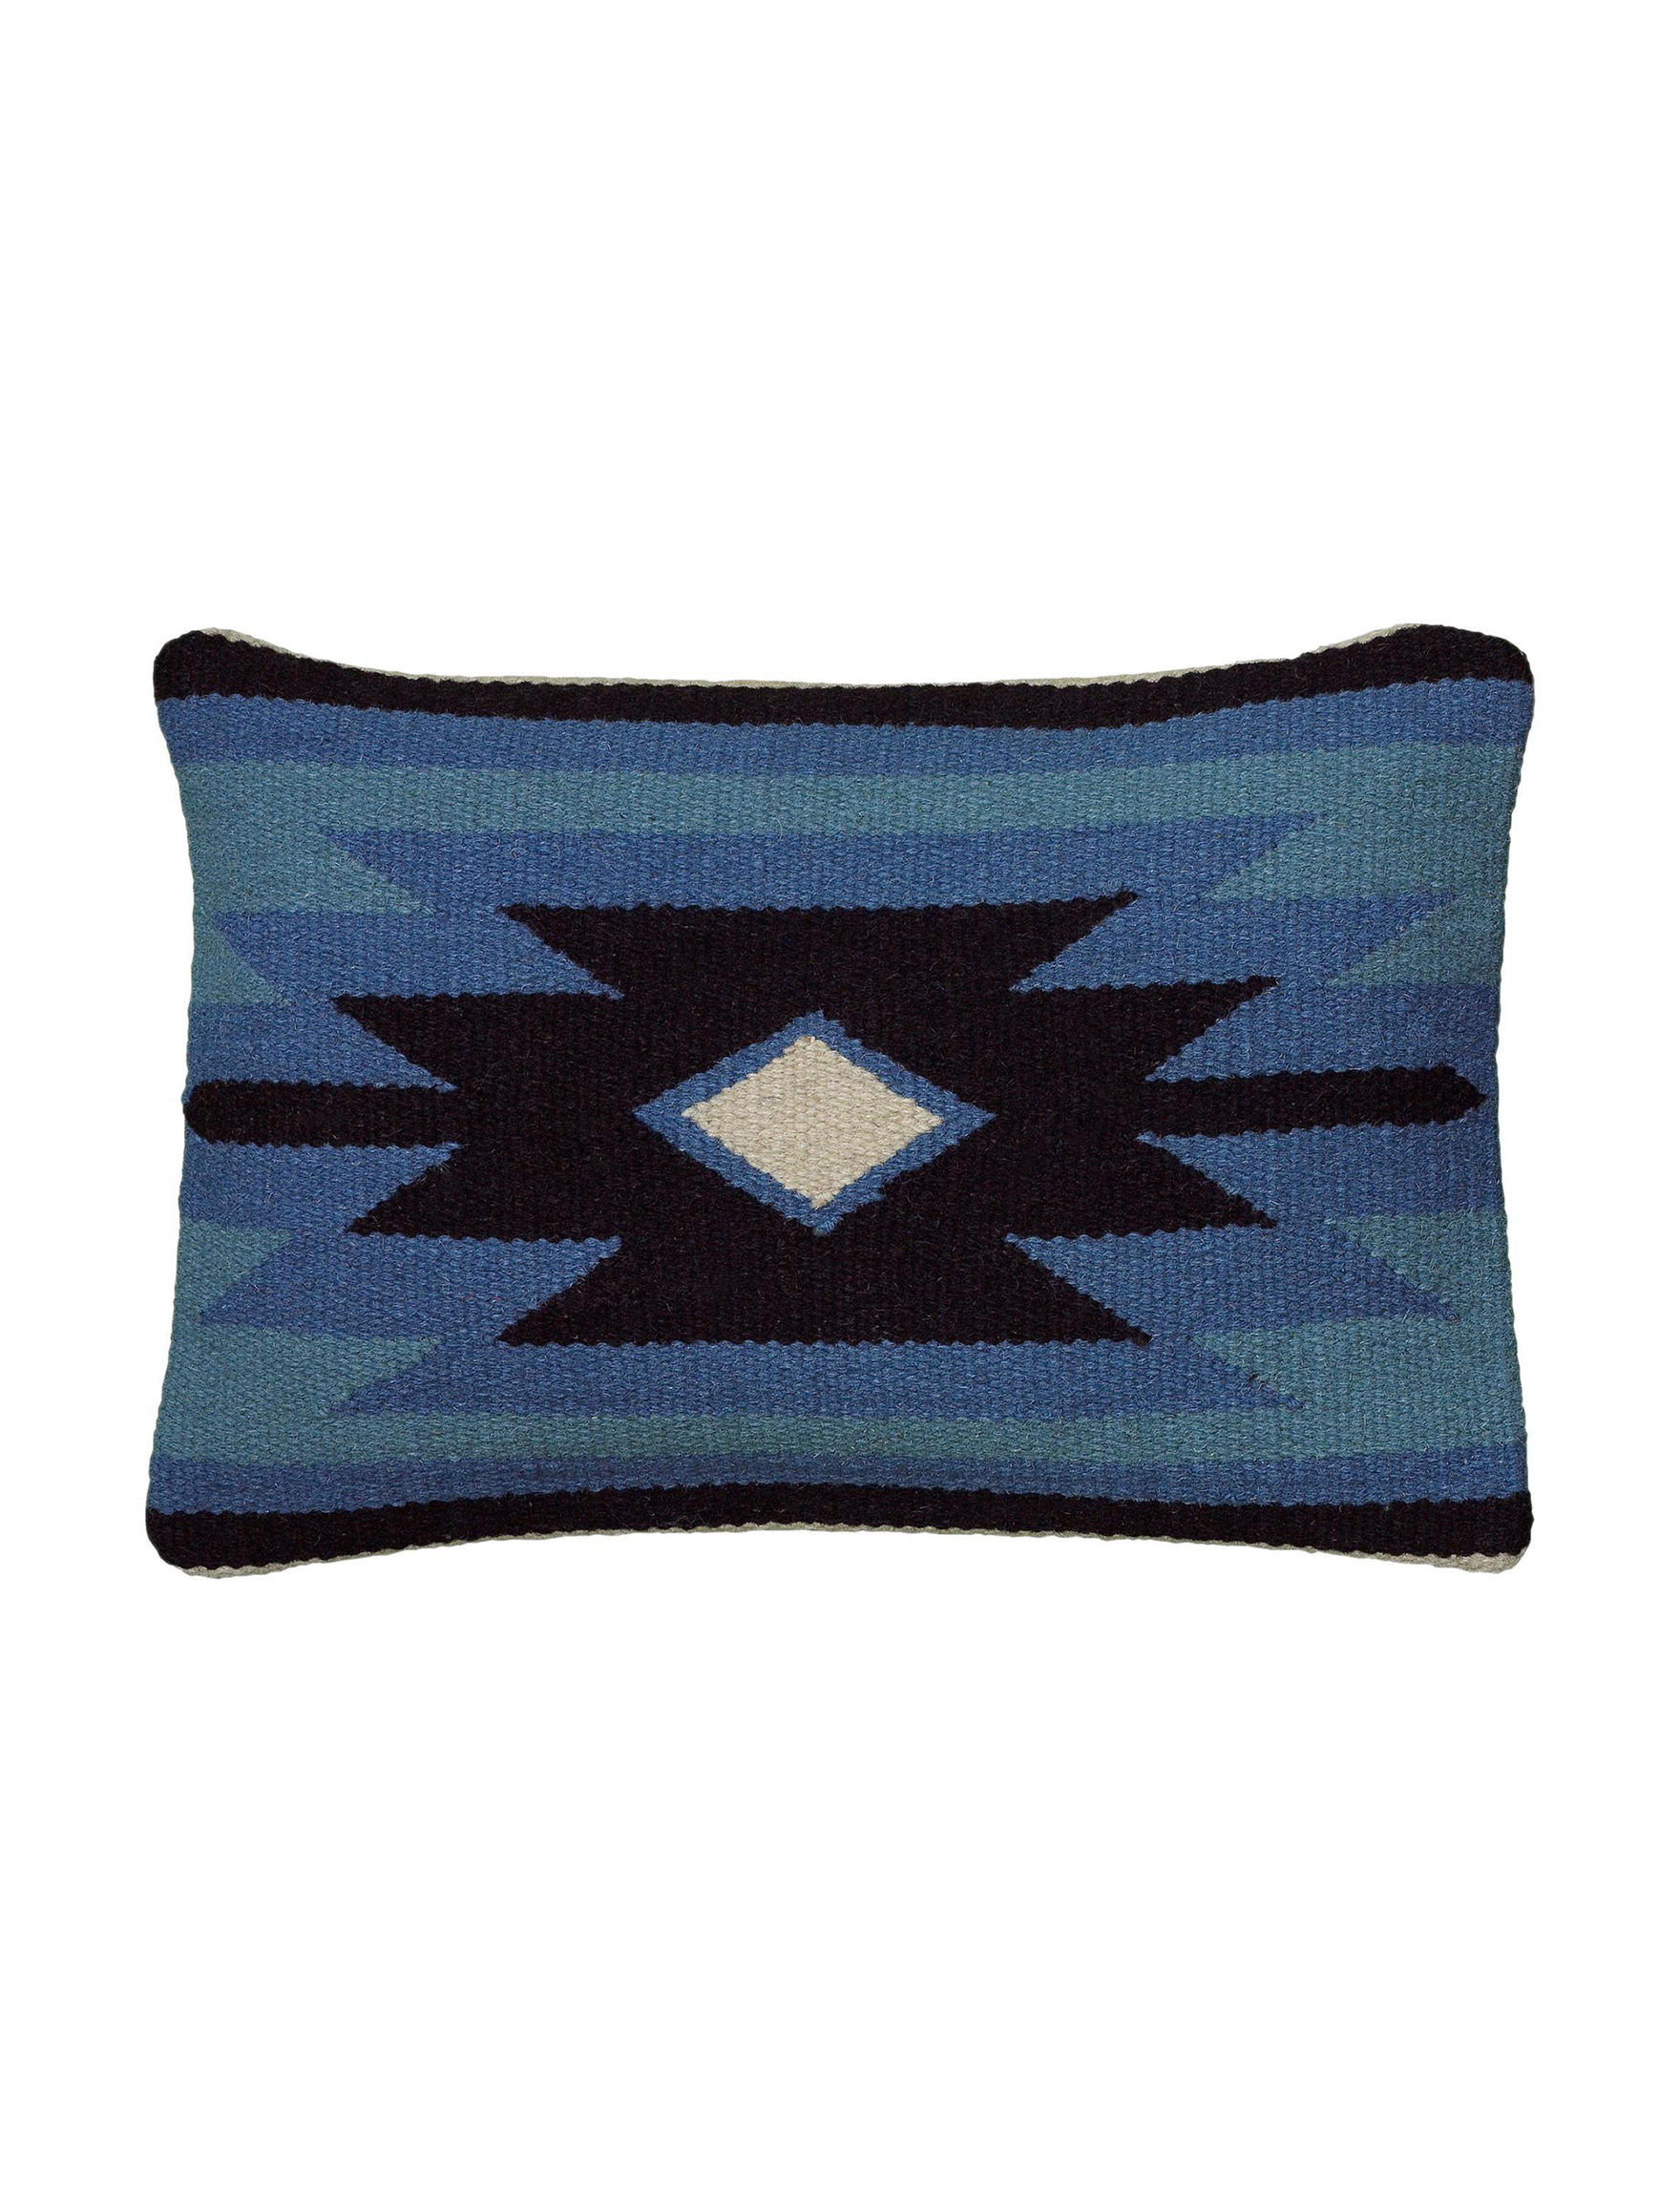 Rizzy Home Navy Decorative Pillows